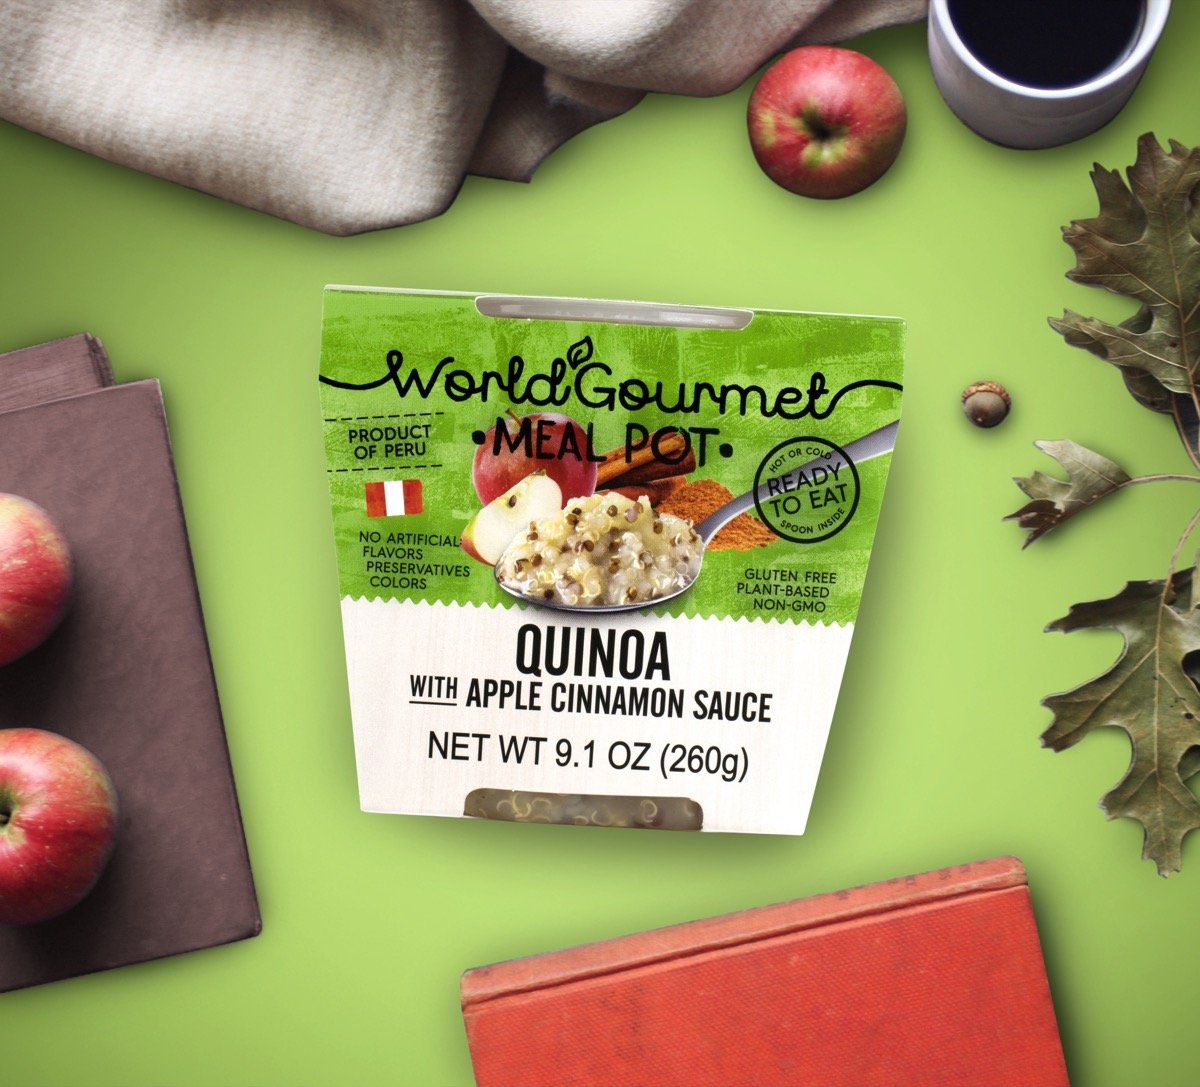 Quinoa Ready To Eat Meal By World Gourmet | Complete Plant-Based Protein Perfect for Breakfast, Lunch or Dinner Packed With A Delicious Apple Cinnamon Sauce (Pack of 6) by World Gourmet (Image #7)